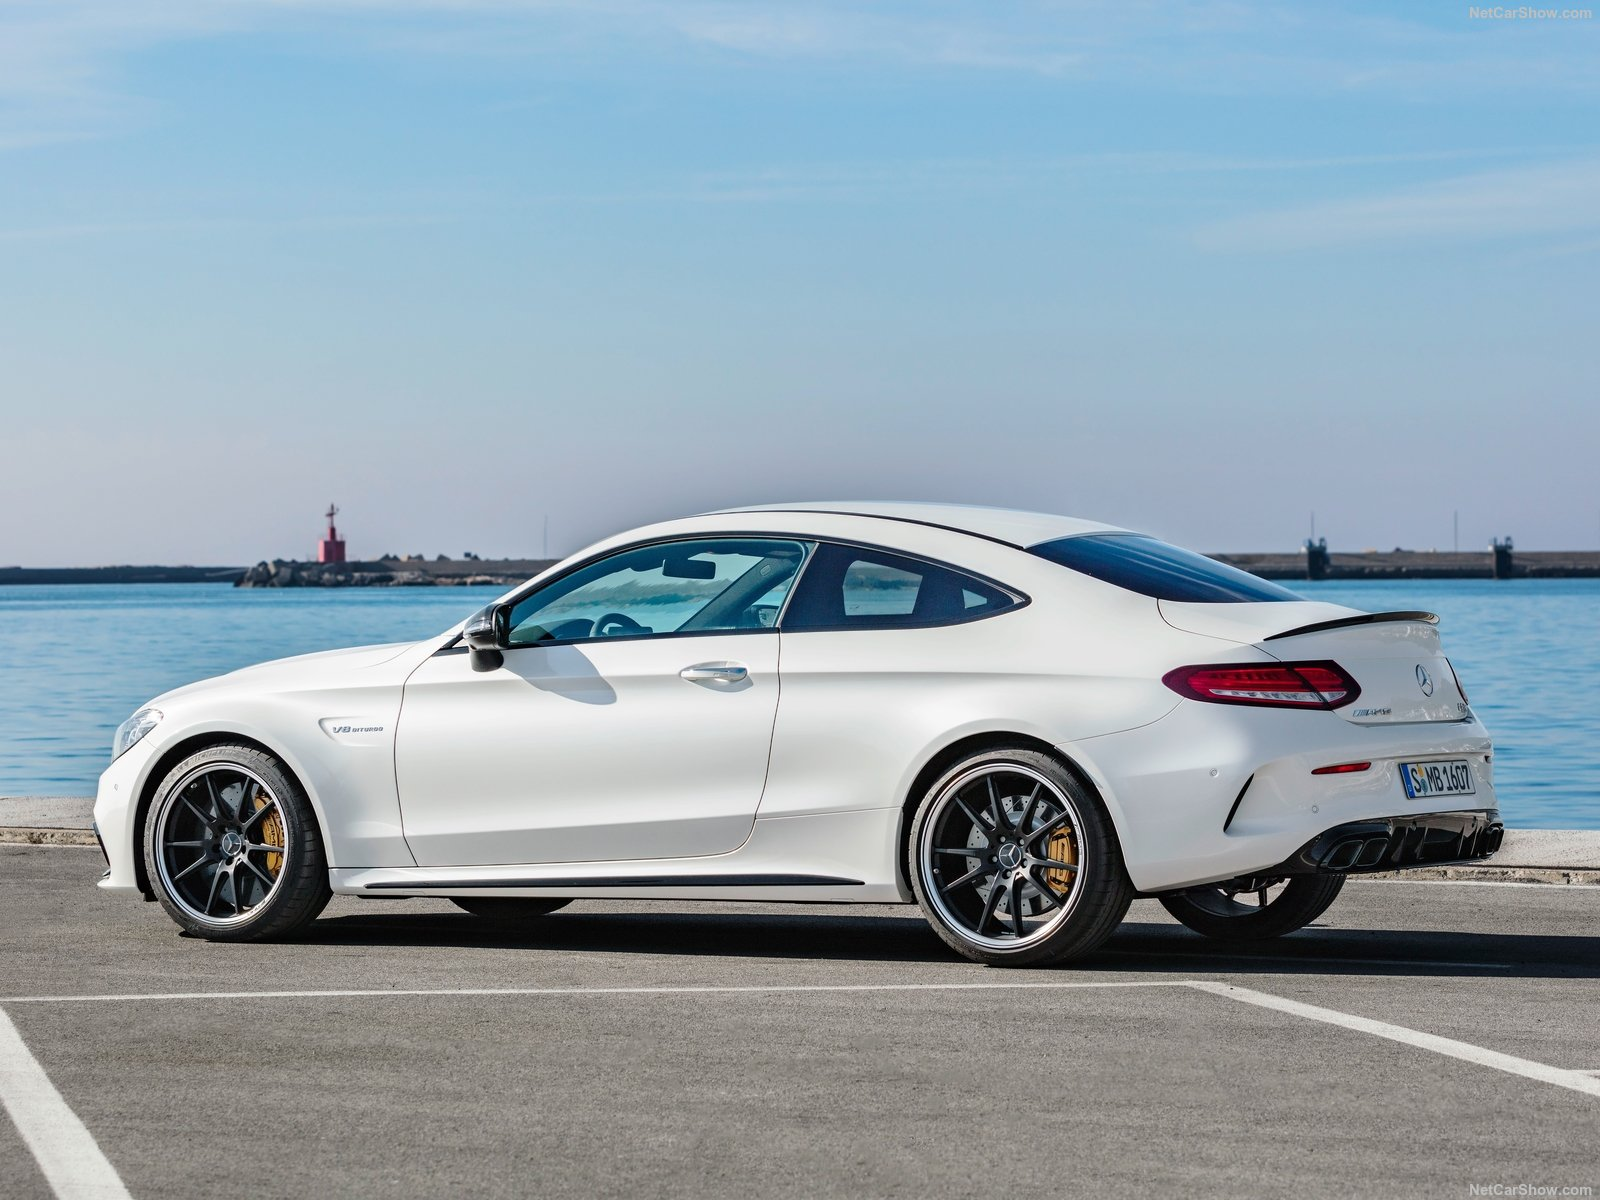 Mercedes-Benz C63 S AMG Coupe photo 187374